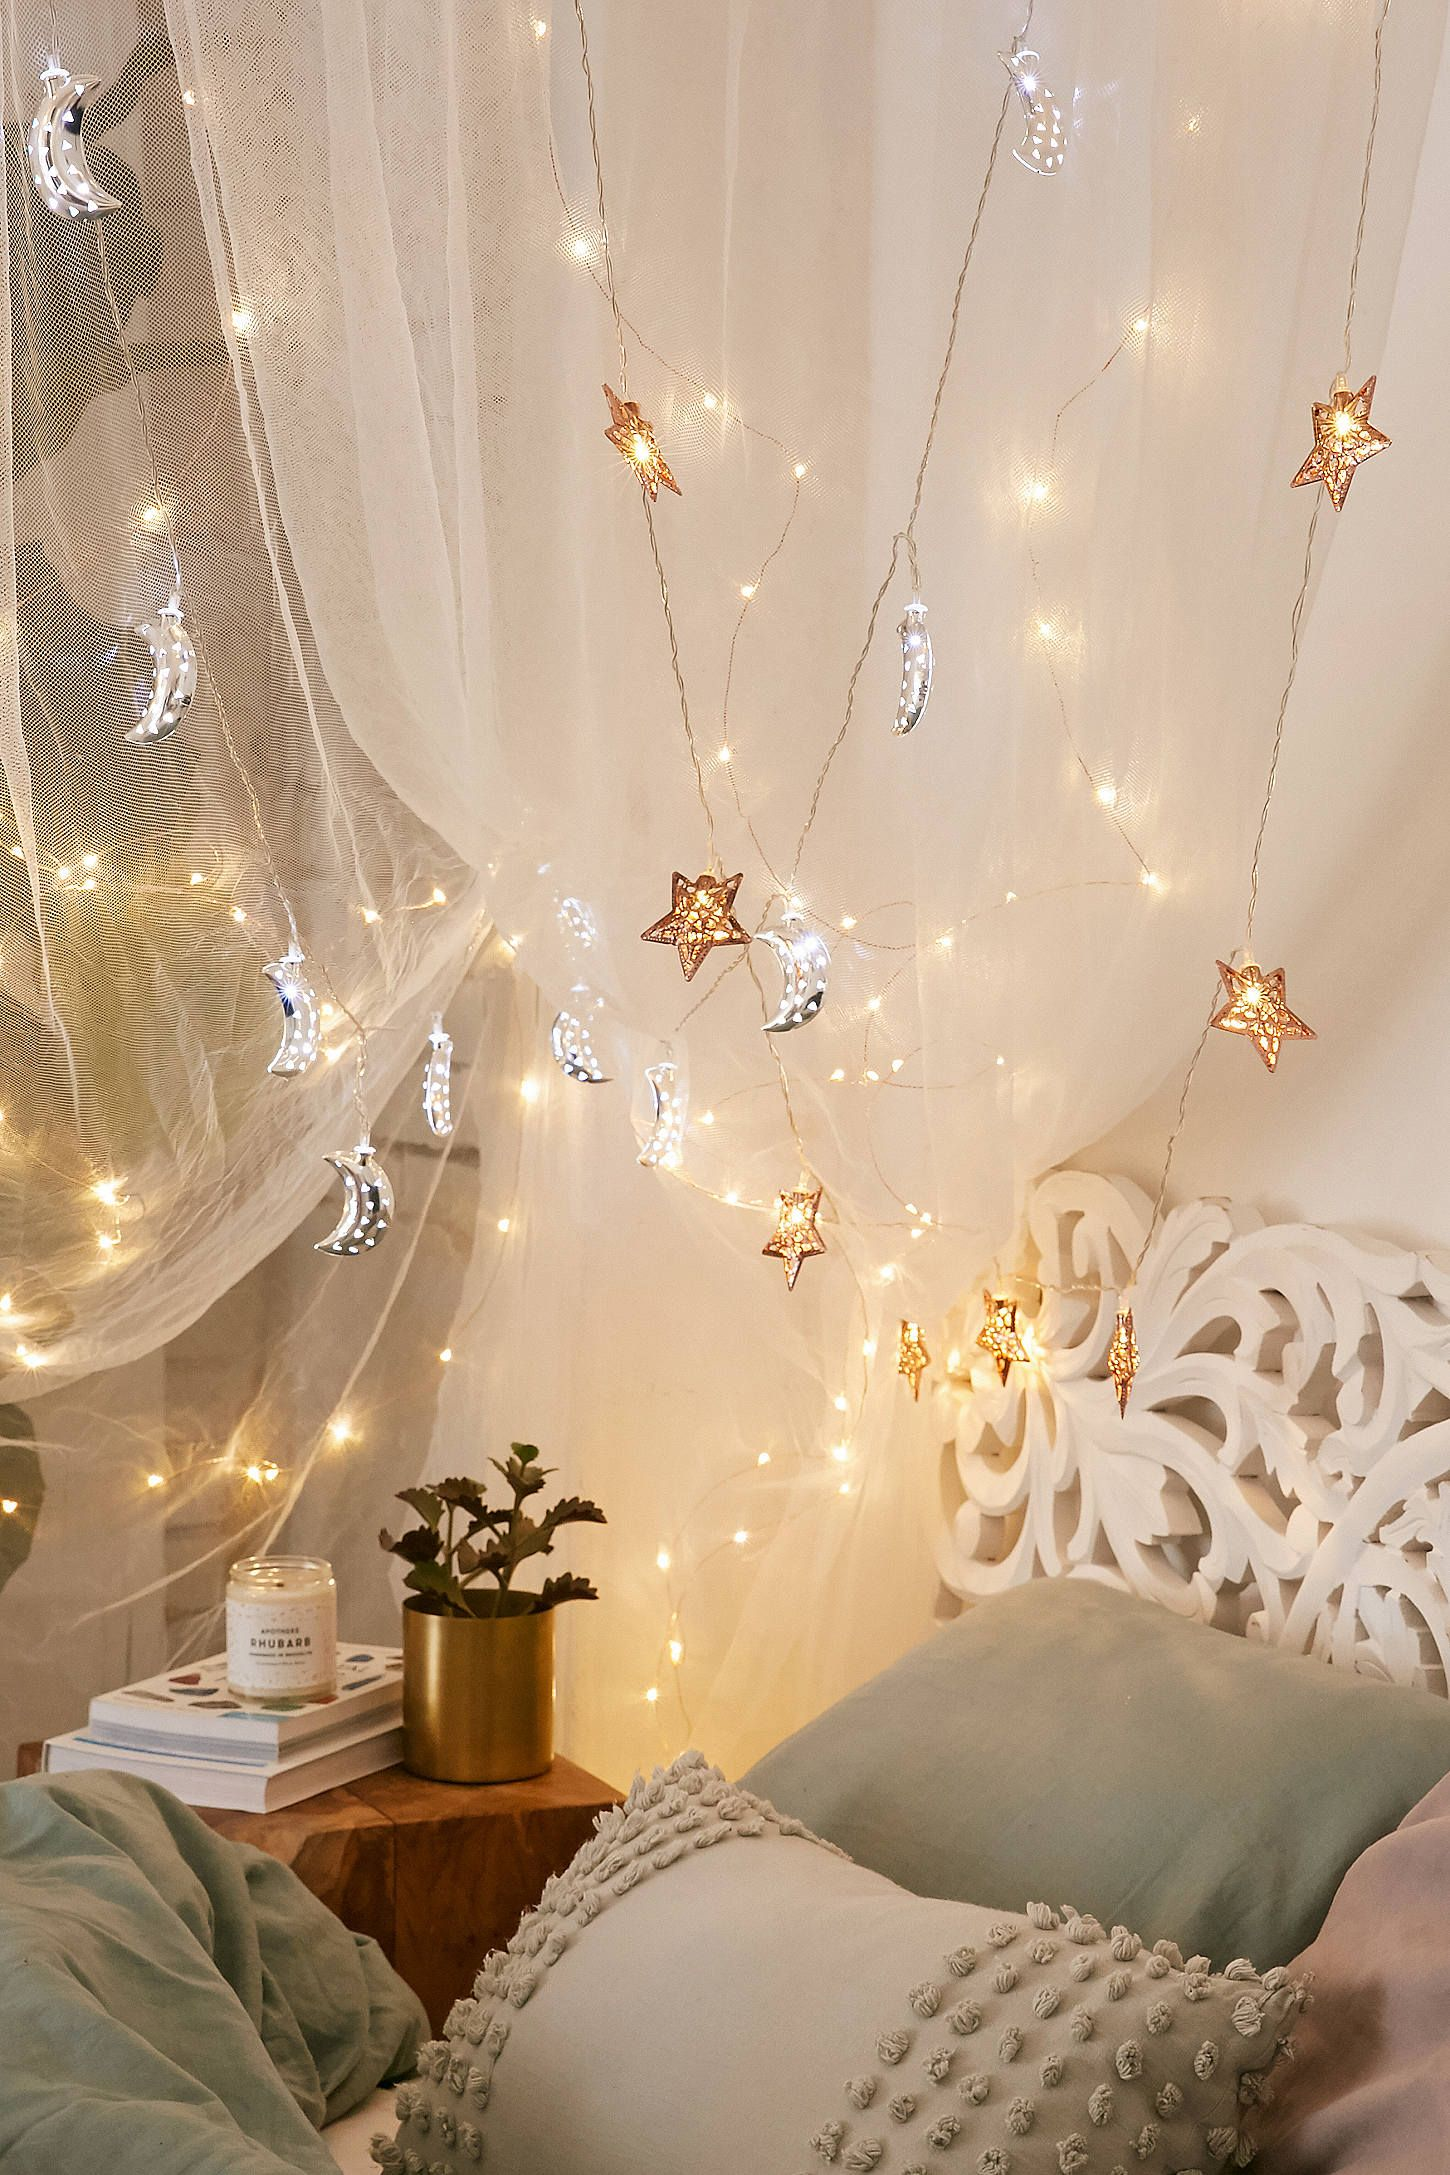 trends dorm decor decorating indoor outstanding lights ideas ikea string bedroom including light with for attractive